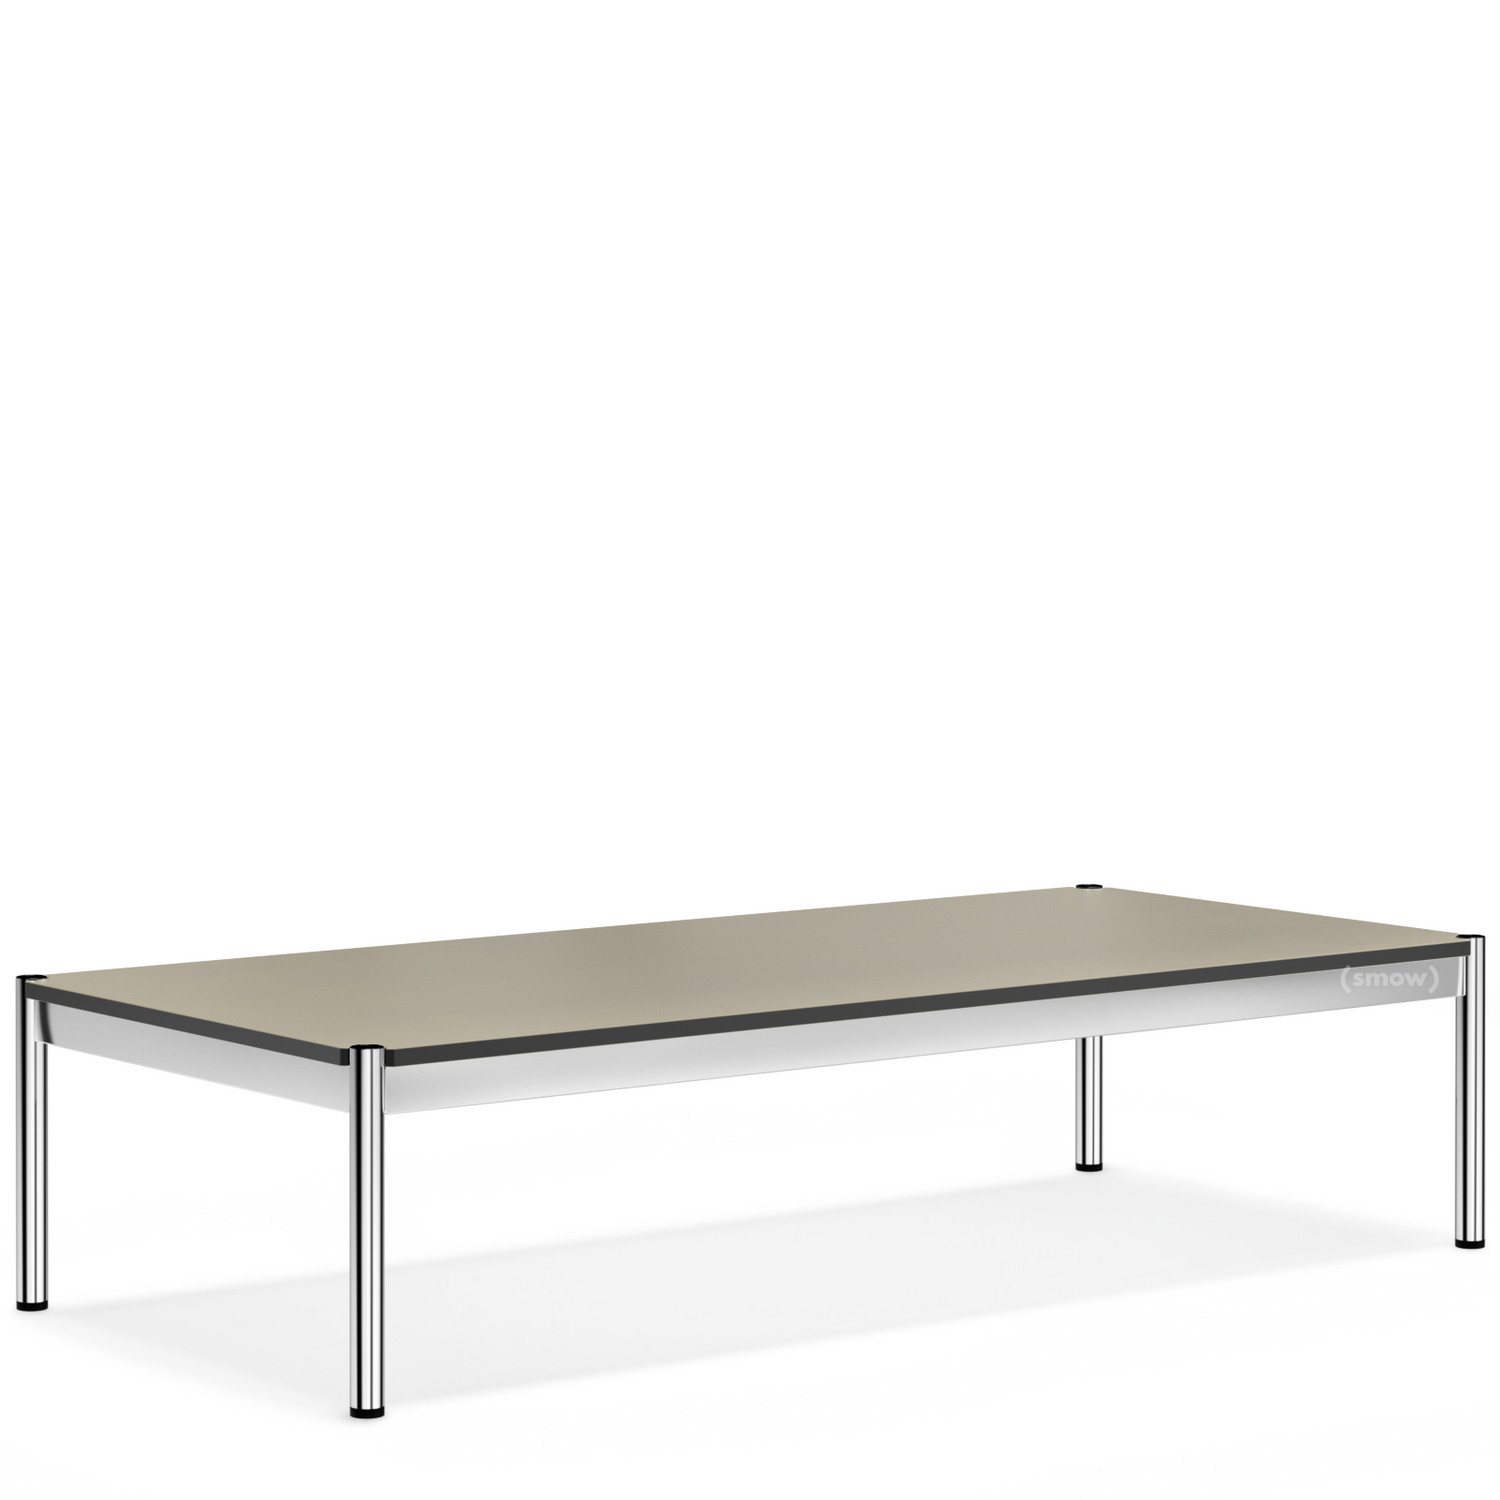 USM Haller Coffee Table 75 X 150 Cm|Linoleum|Pebble